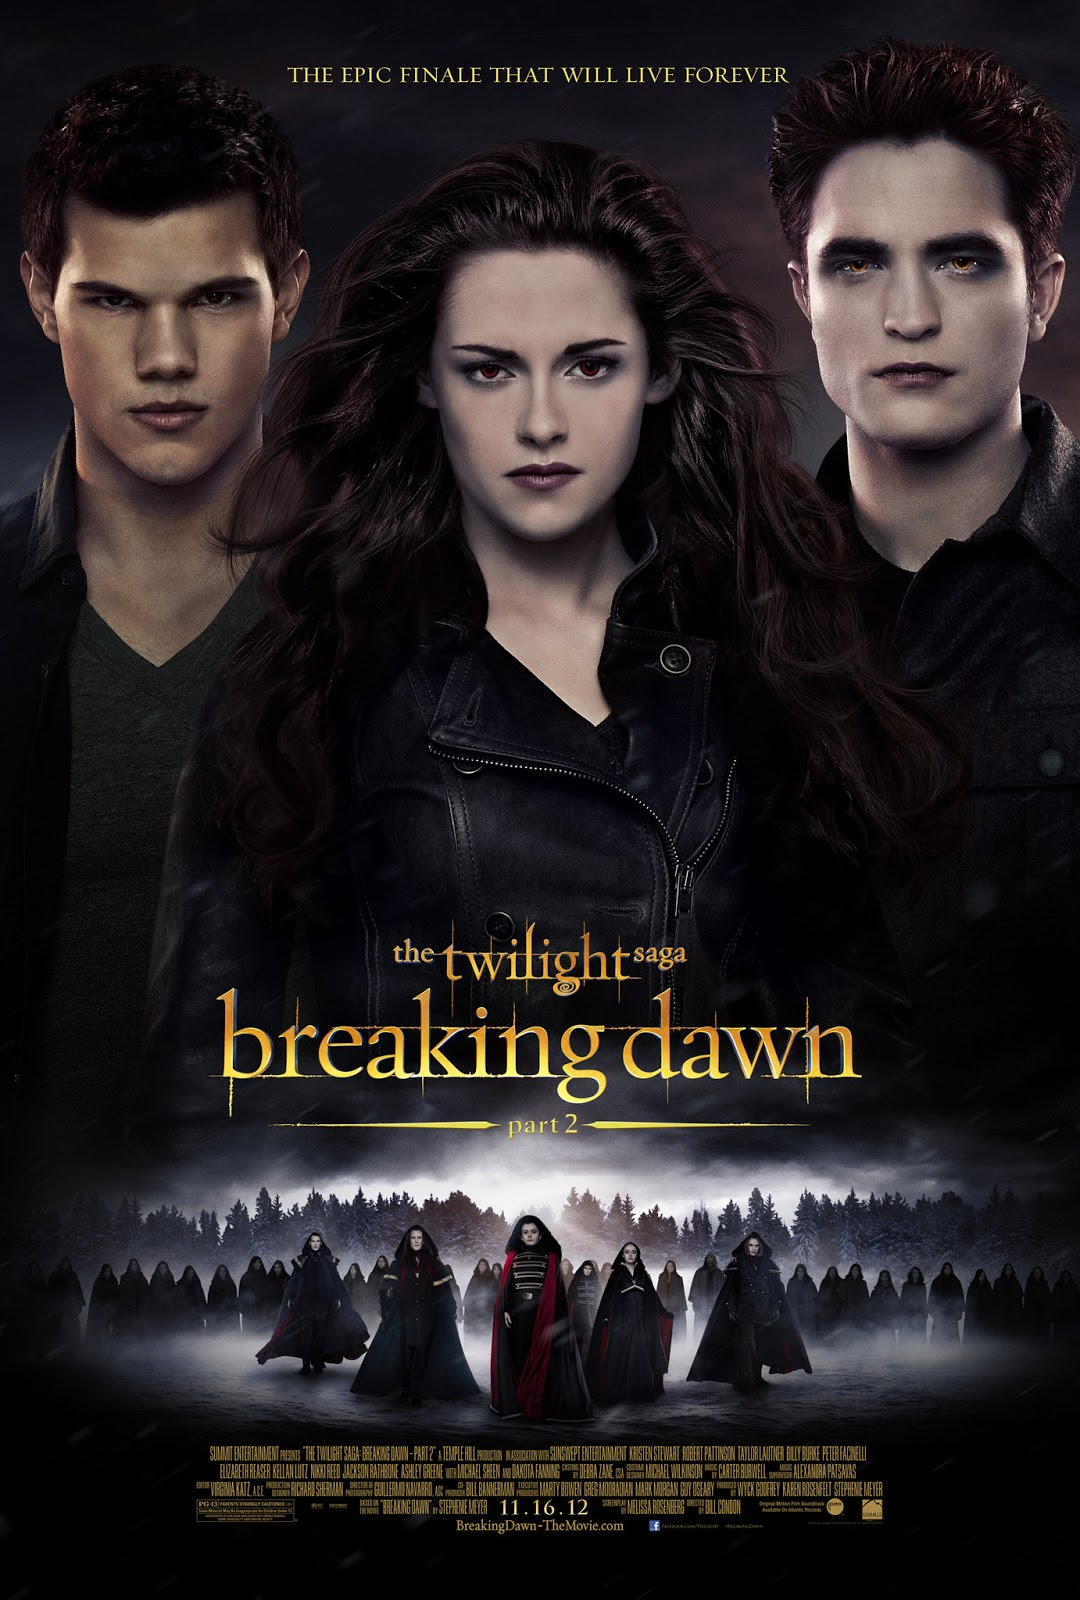 http://4.bp.blogspot.com/-963S7T77IWM/UIsAGC5VowI/AAAAAAAABuM/YlryPboCH_s/s1600/Poster_The_Twilight_Breaking_Dawn_part_2.jpg